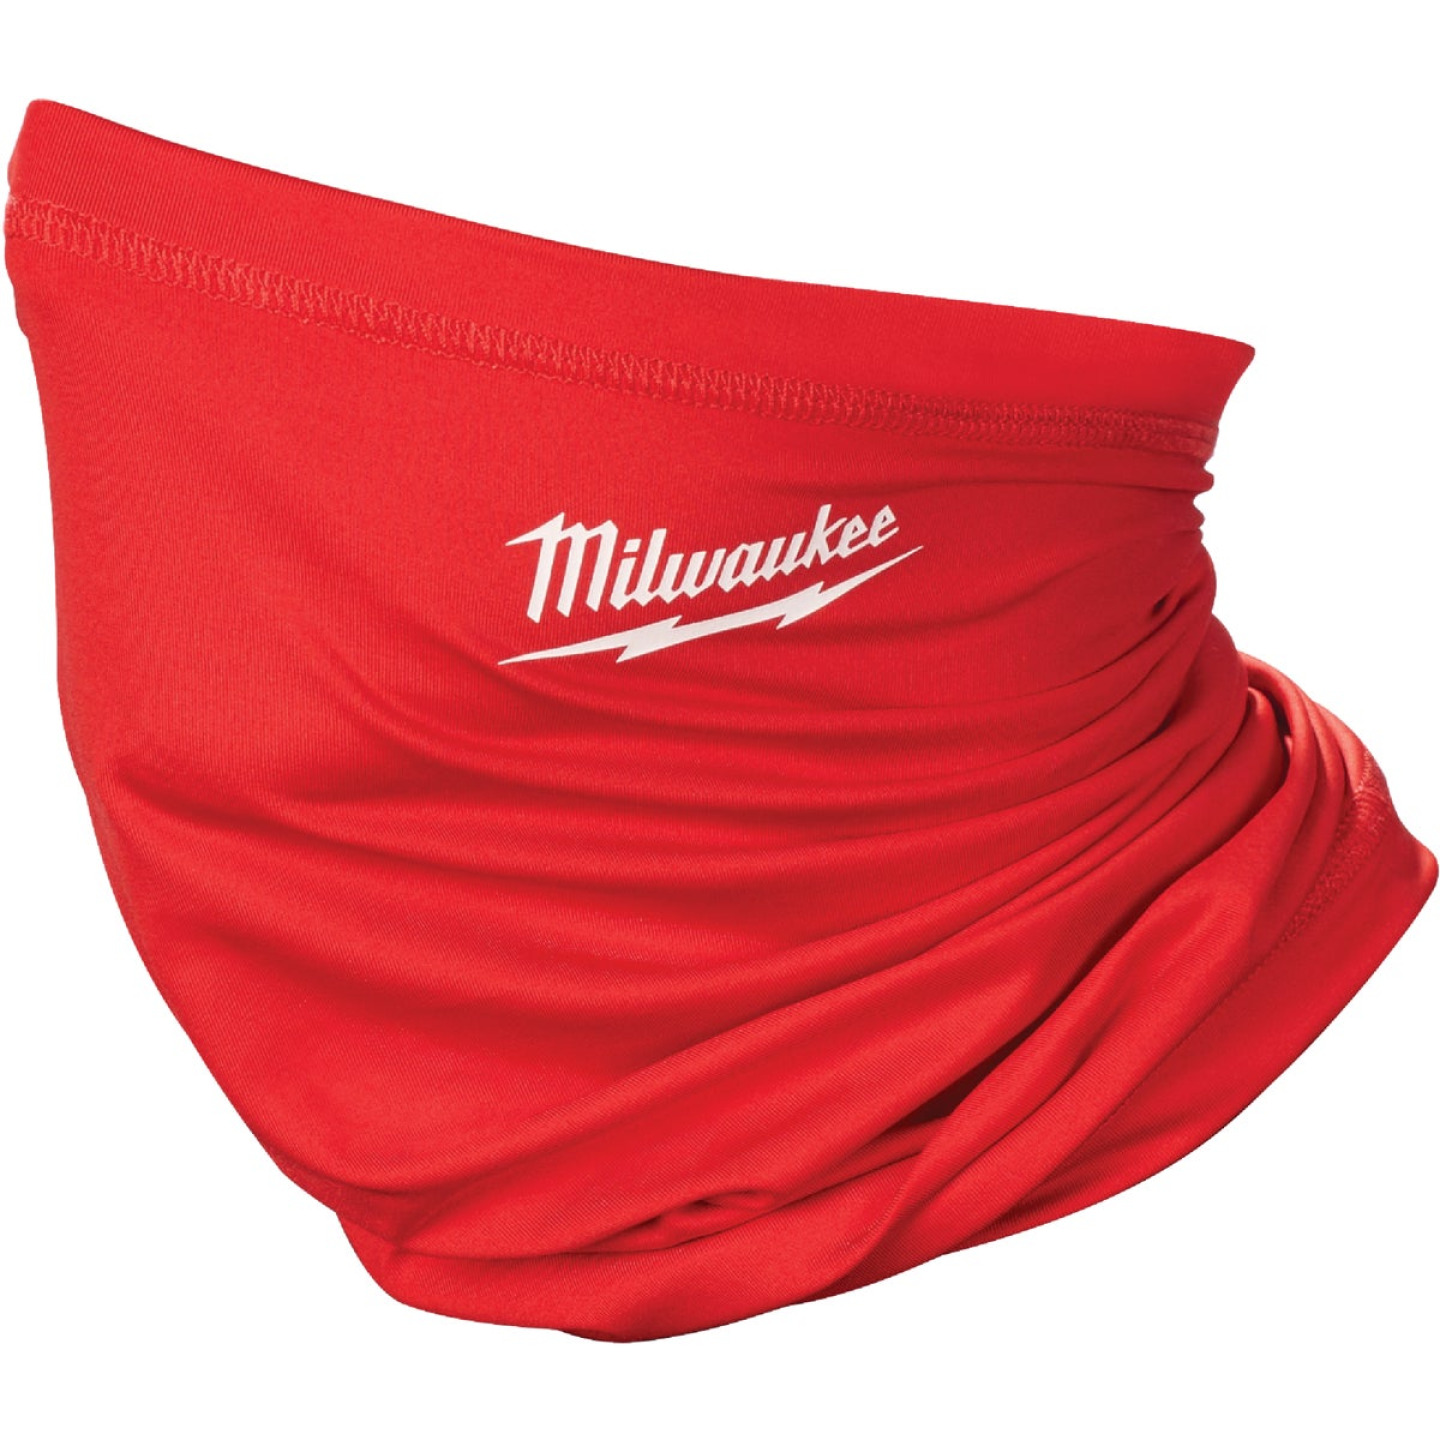 Milwaukee Washable Neck Gaiter, Red Image 1